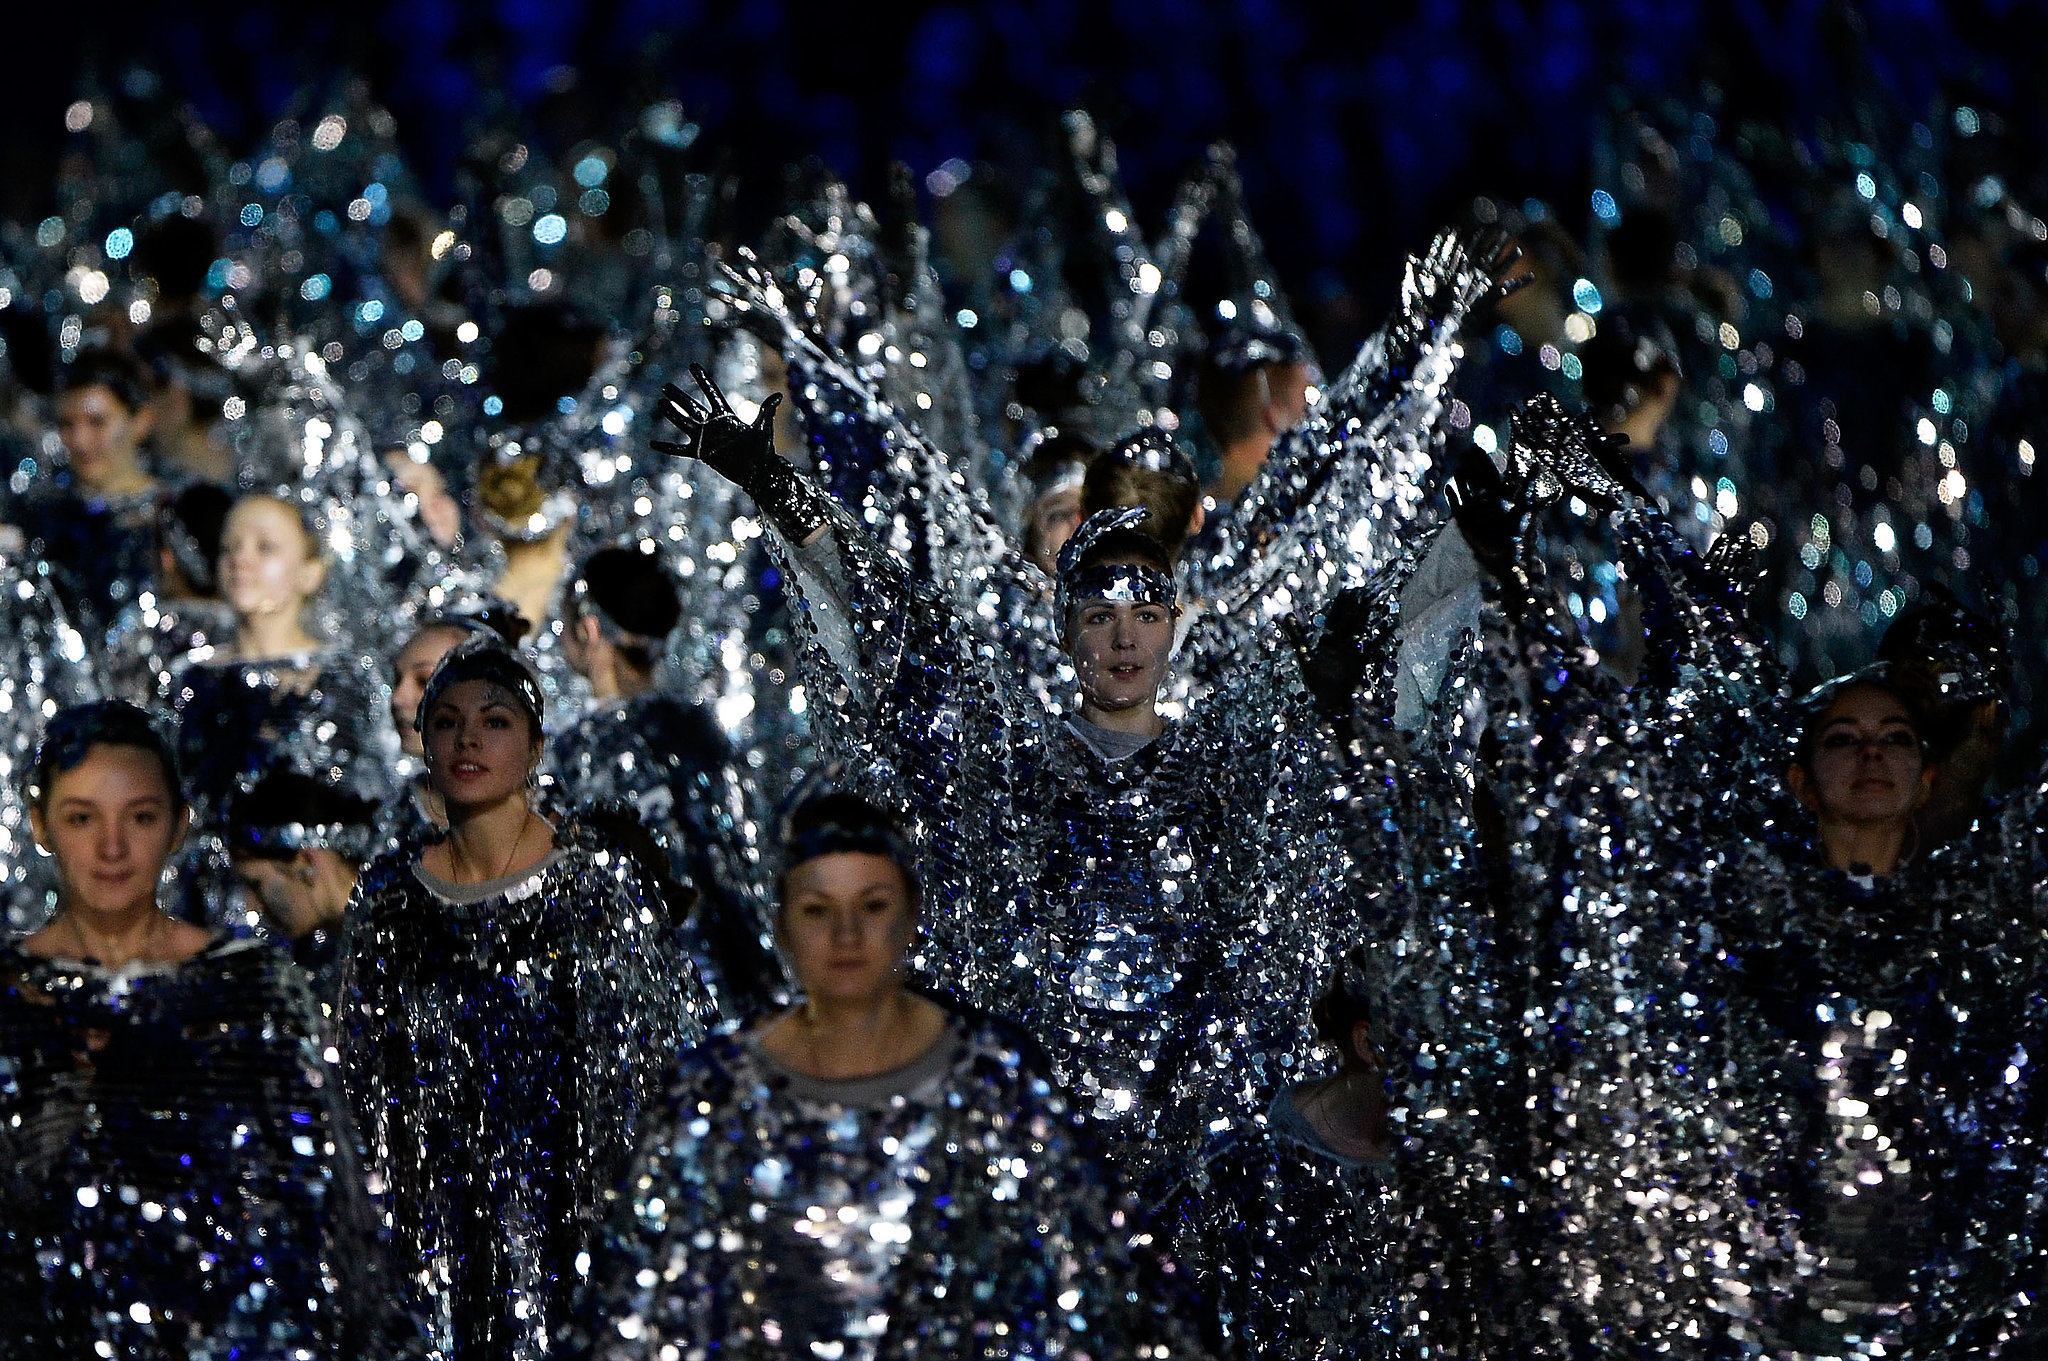 Dancers in sparkly silver outfits took the spotlight.